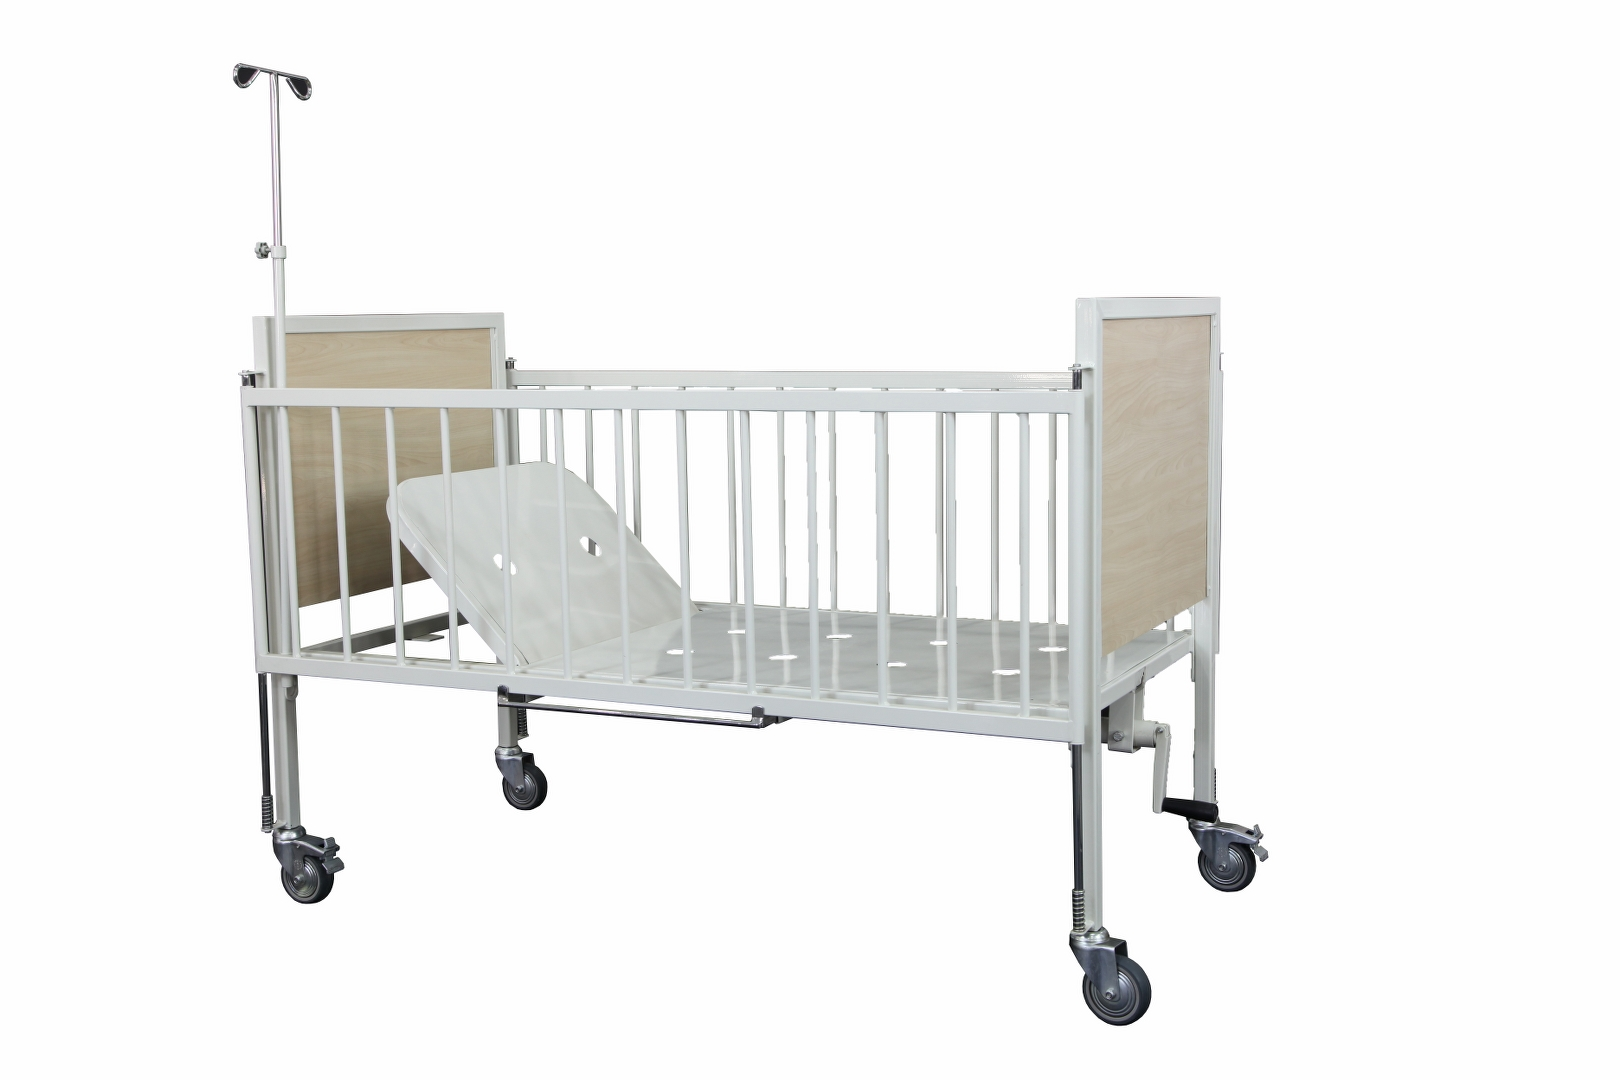 CK-10 PEDIATRIC BED Detail 1